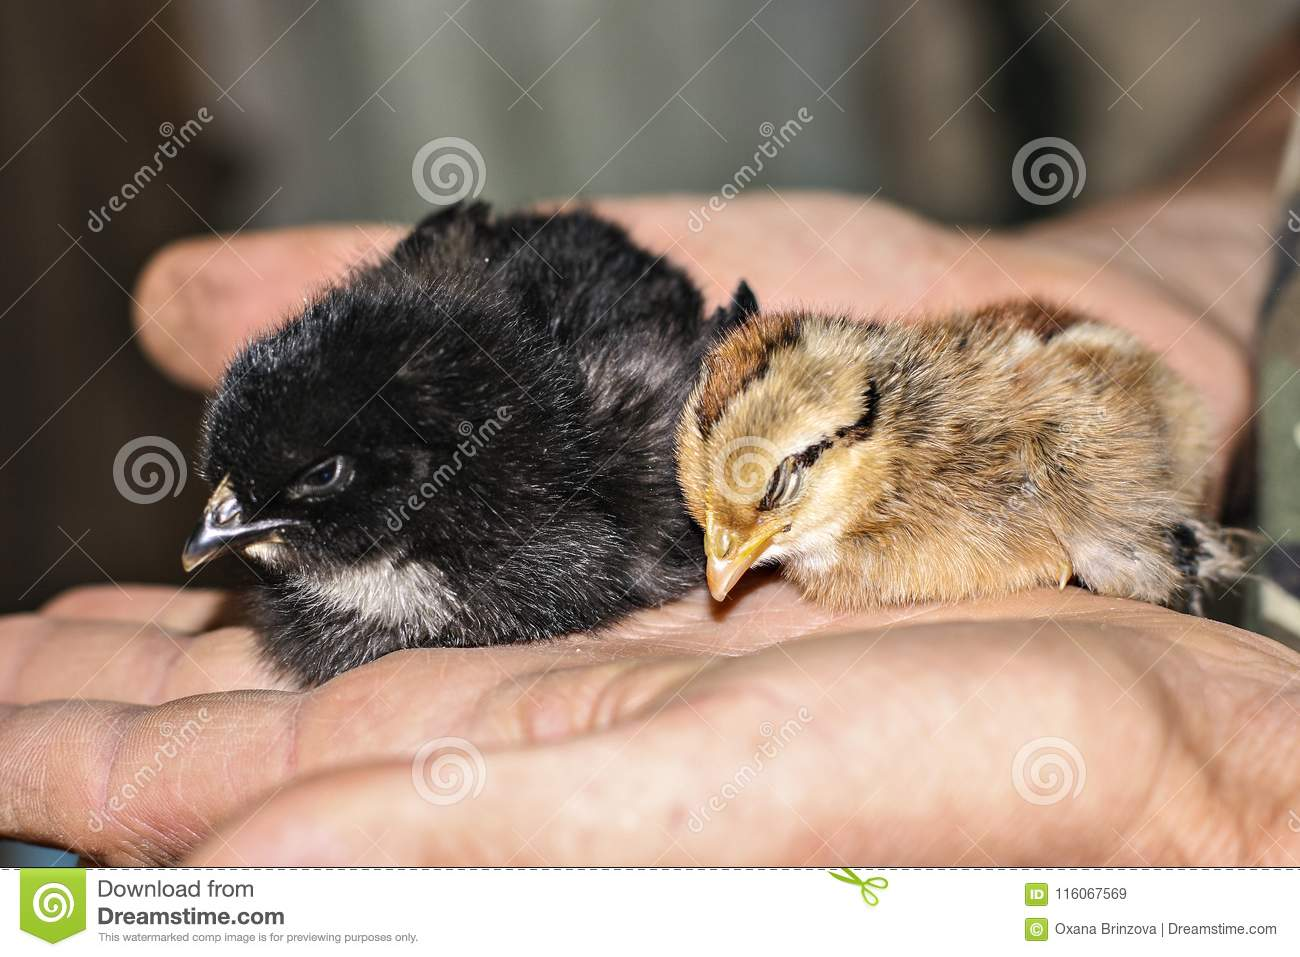 Two little cute baby chicks sitting on the hand.